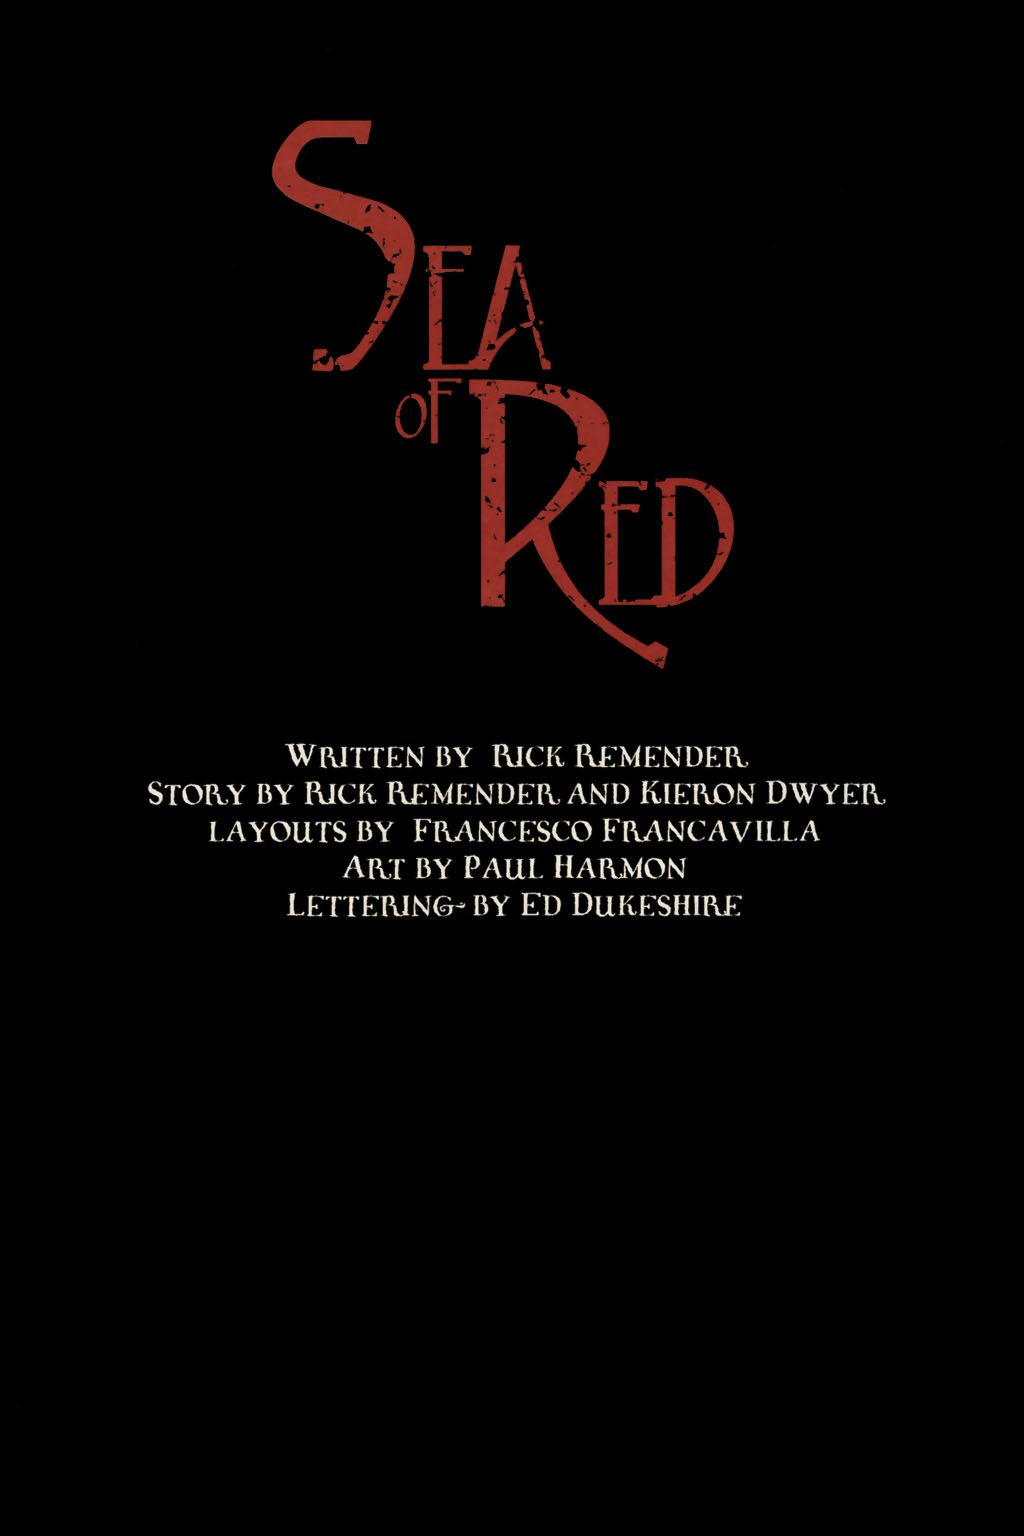 Read online Sea of Red comic -  Issue #13 - 27